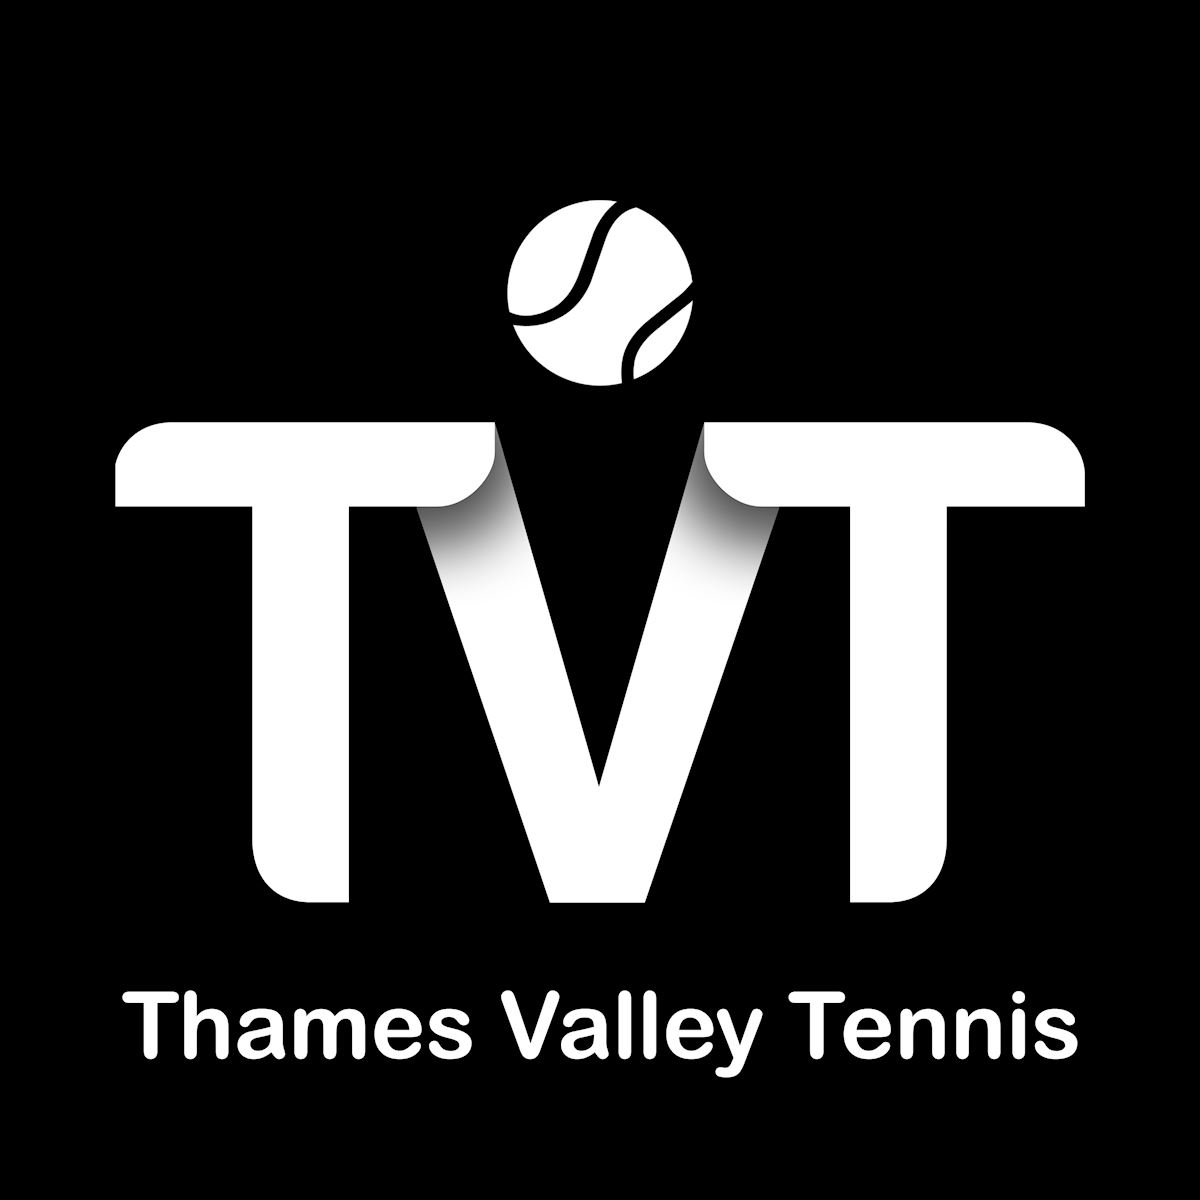 Thames Valley Tennis